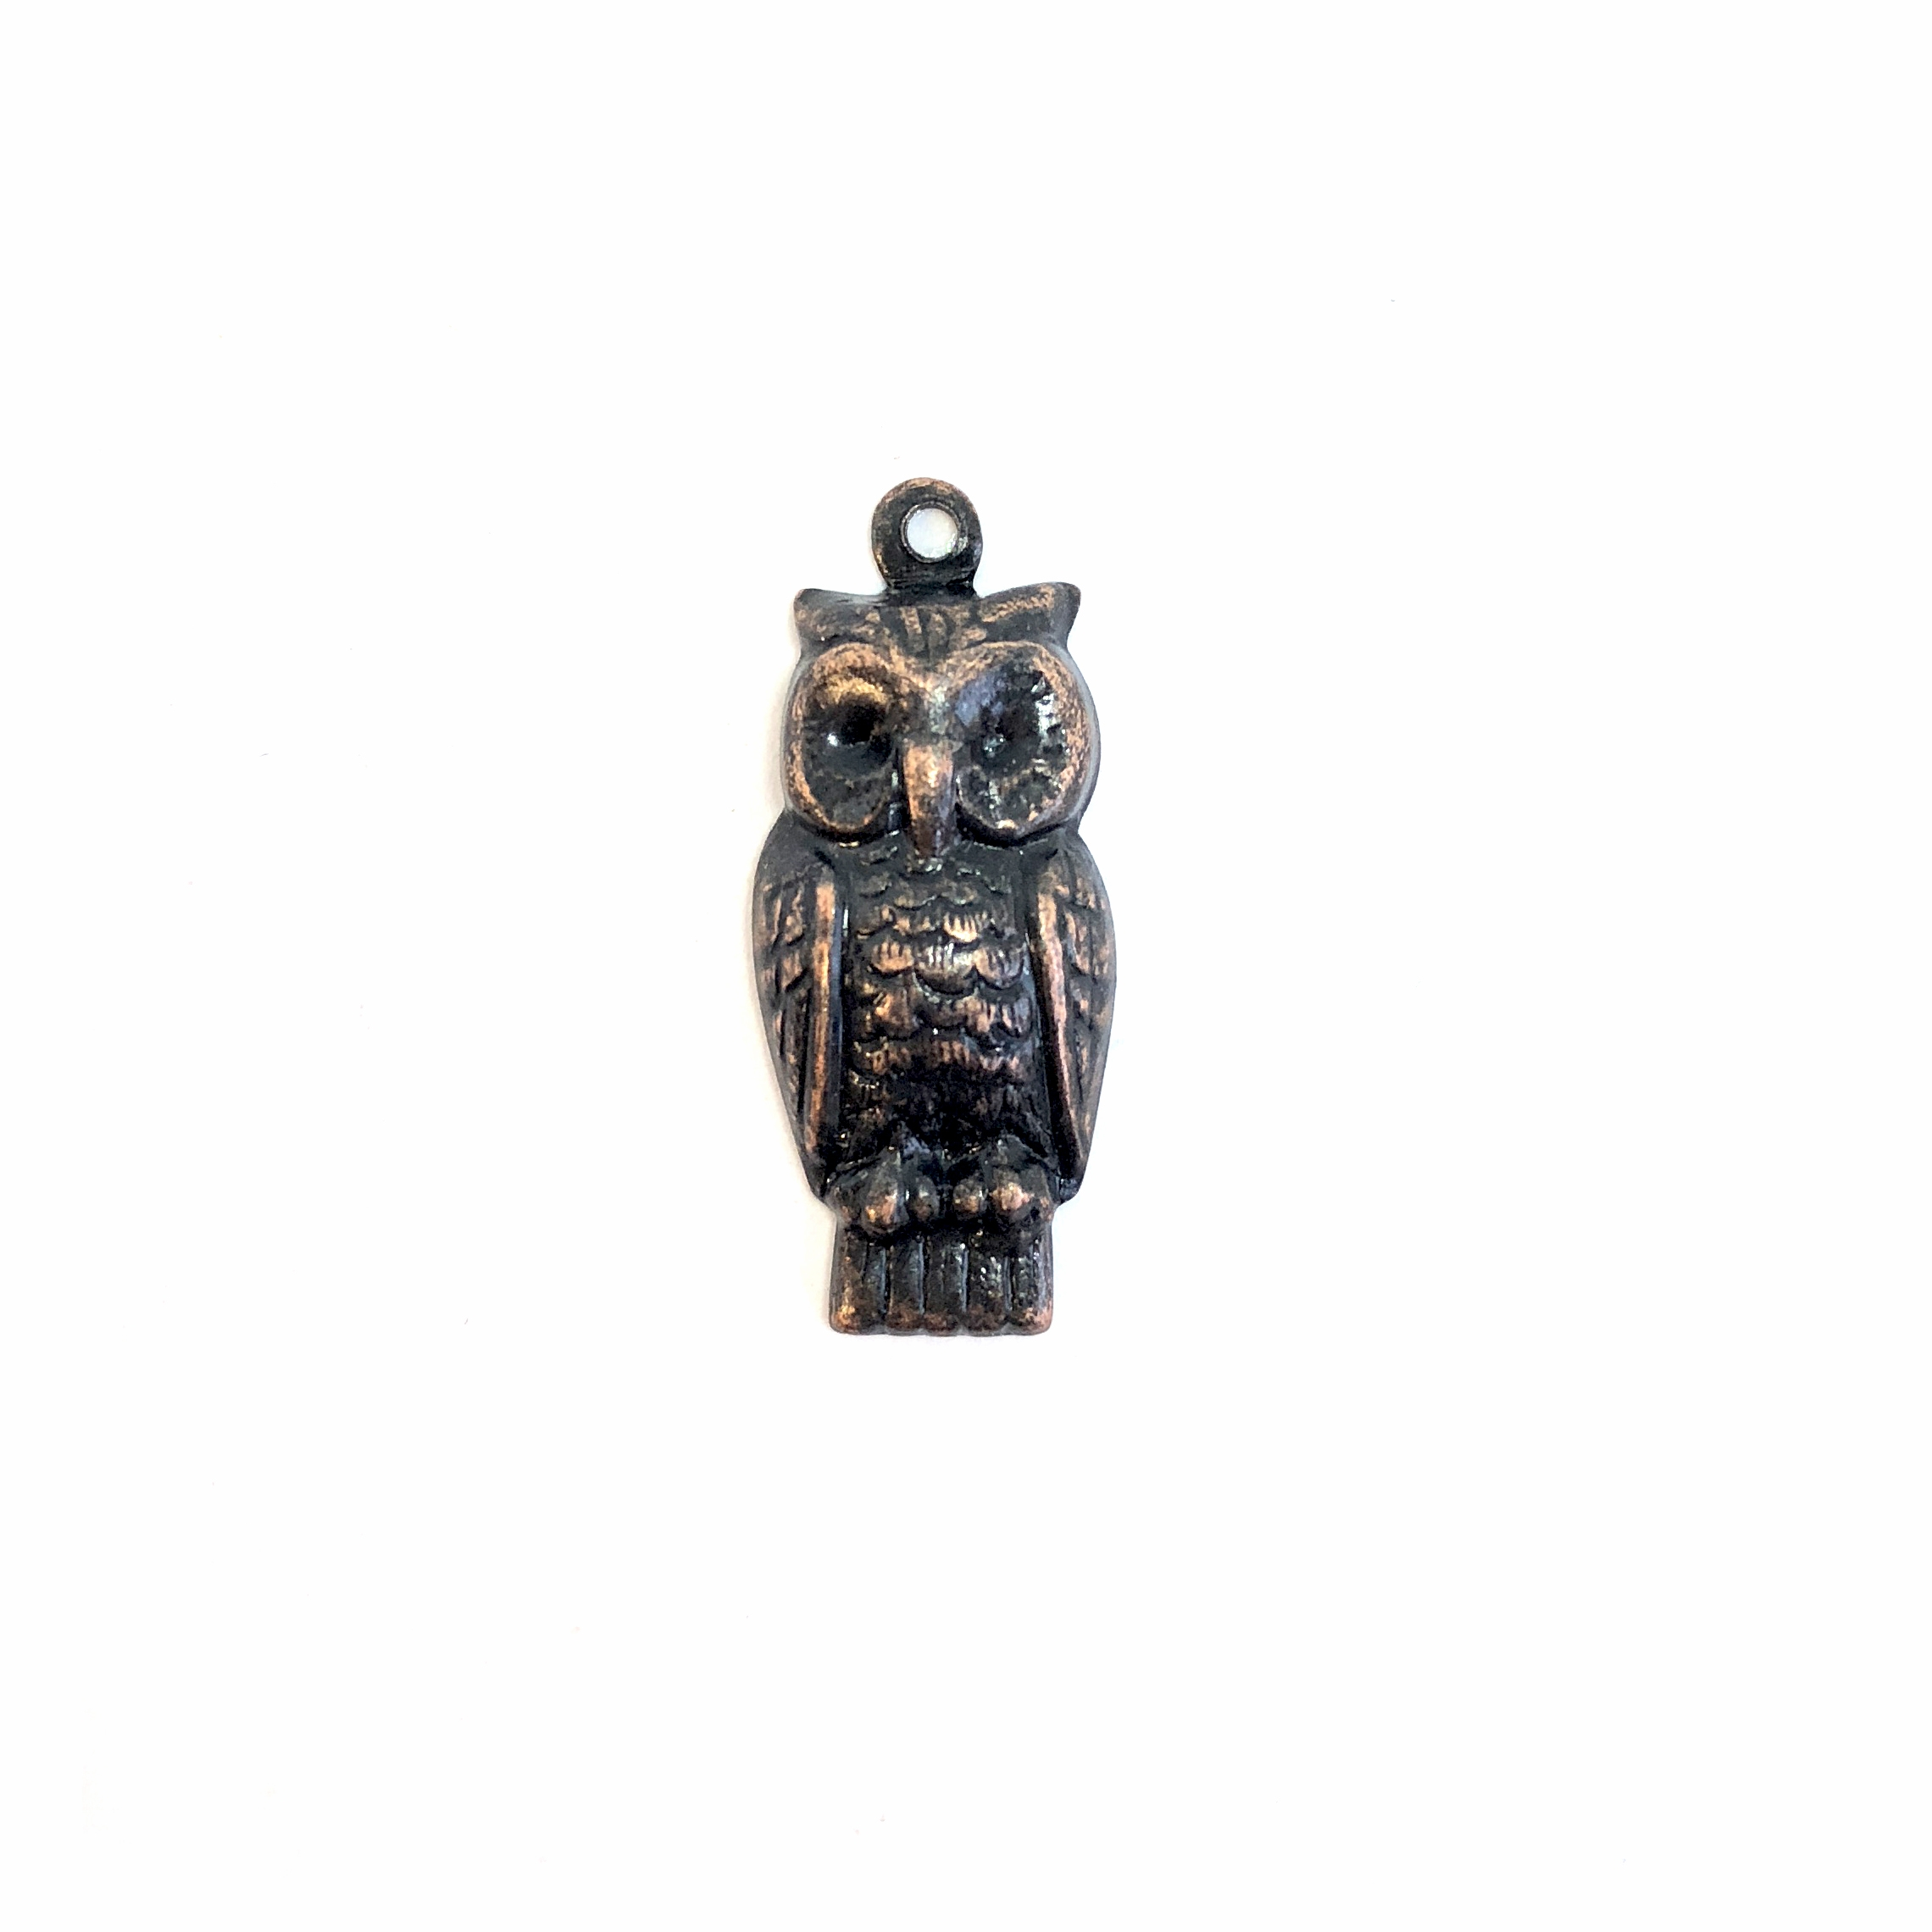 perched owl charm, rusted iron, owl, charm, 24x11mm, owl charm, copper accents, brass stamping, B'sue Boutiques, nickel free, US made, vintage supplies, jewelry making, animal charm,  jewelry supplies, jewelry findings, 08605